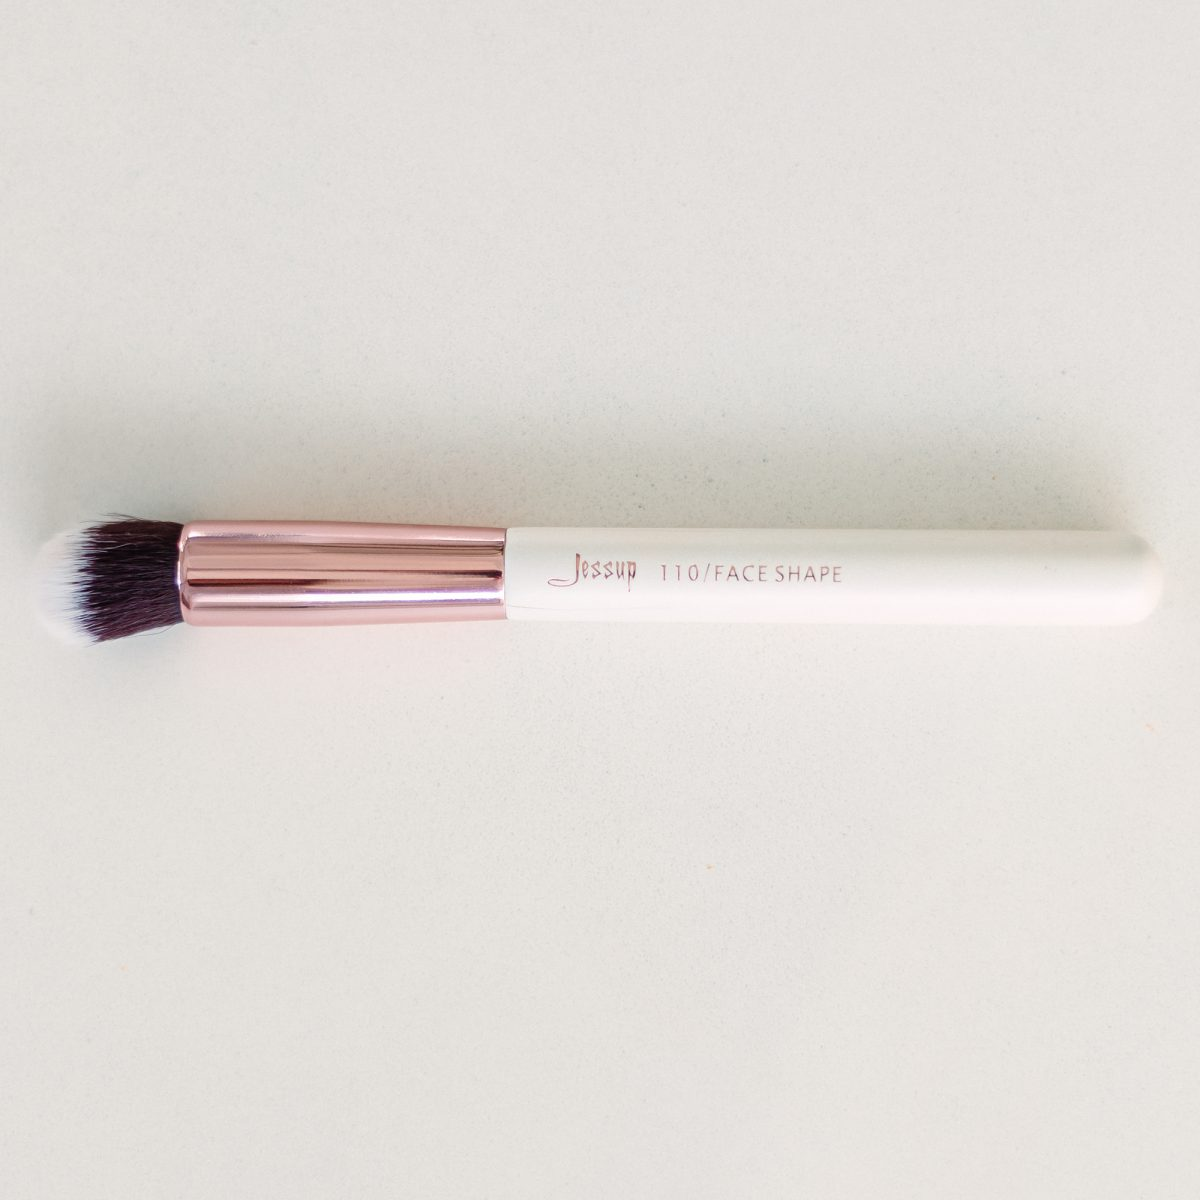 Makeup Brushes Guide - Jessup 110 Face Shape Brush